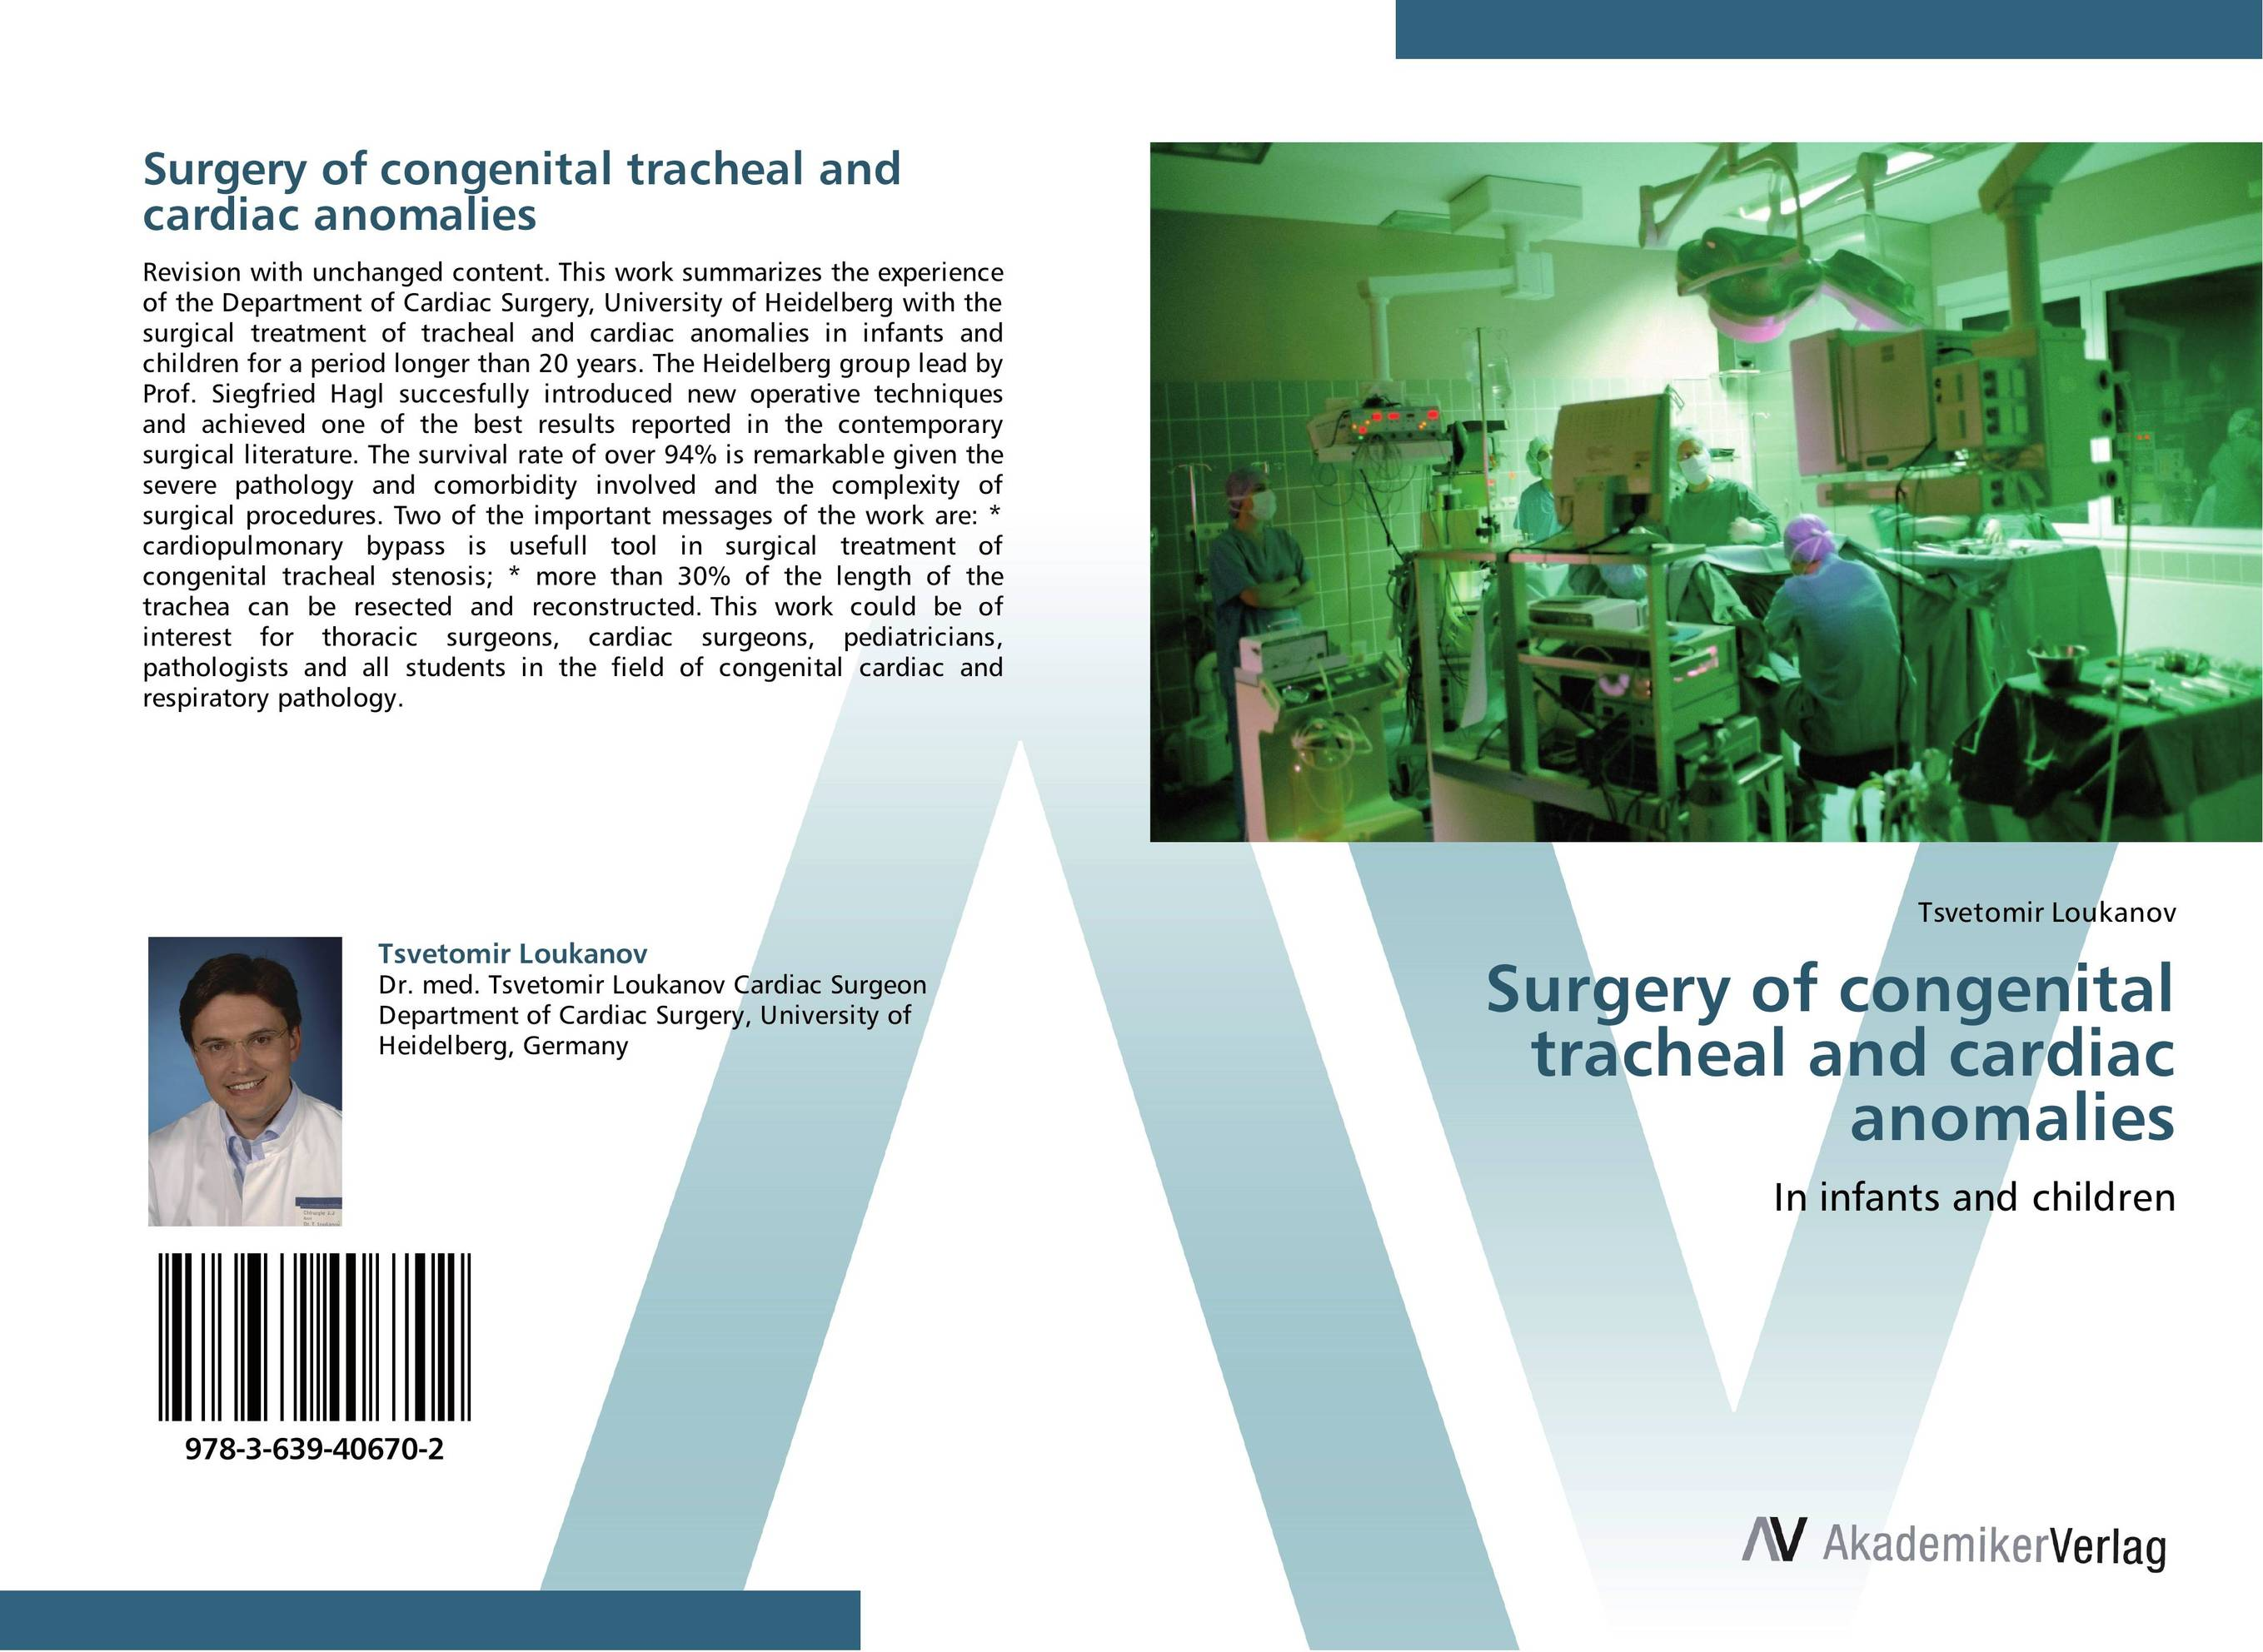 Surgery of congenital tracheal and cardiac anomalies альбом cephalotripsy uterovaginal insertion of extirpated anomalies